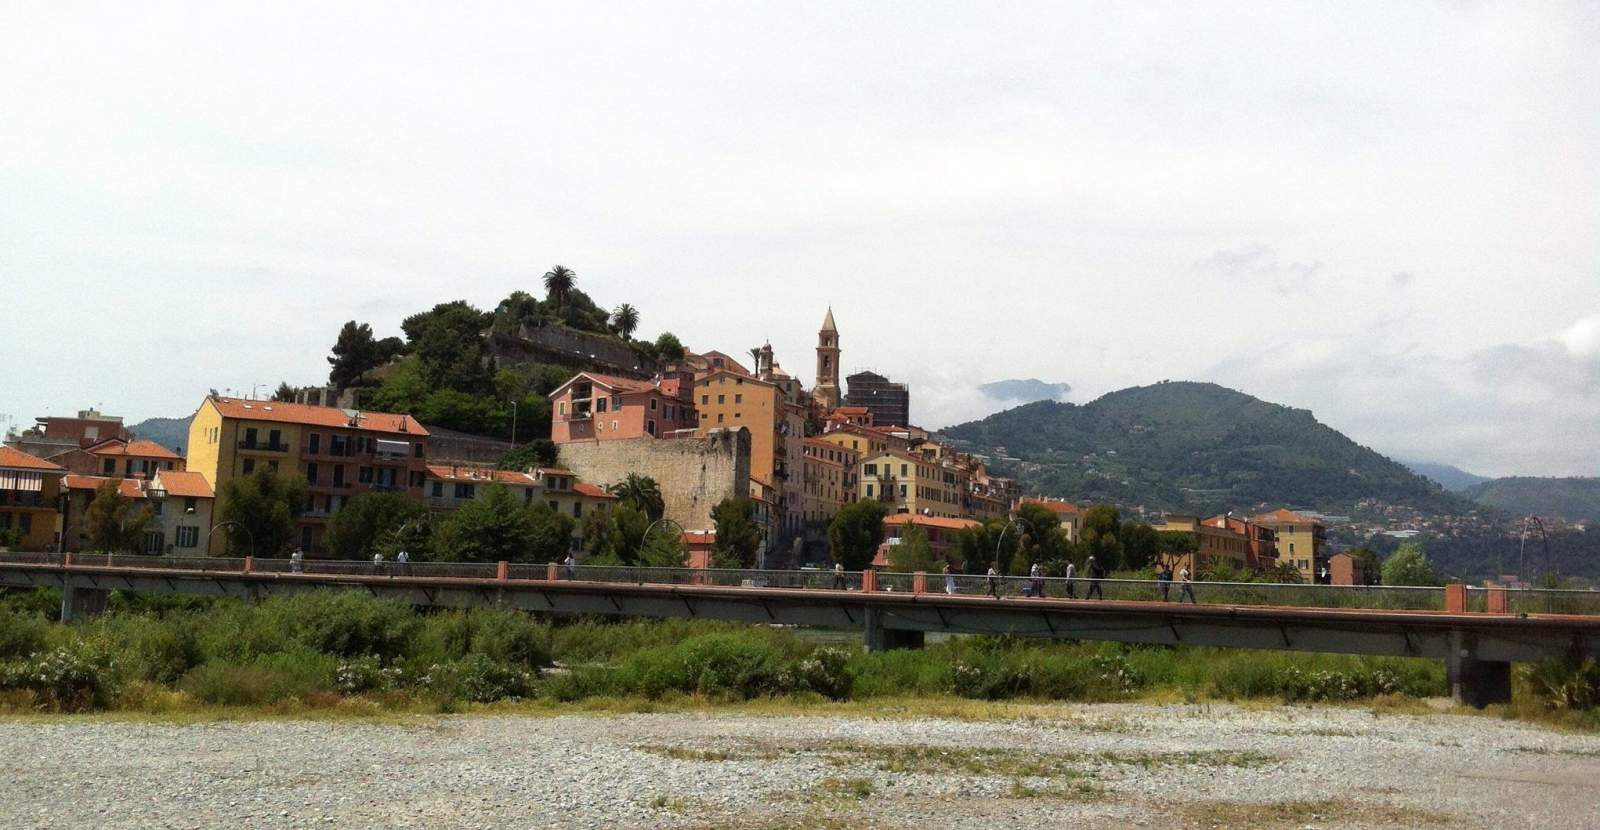 ventimiglia in liguria, italy, is easily driven to for a day out from france